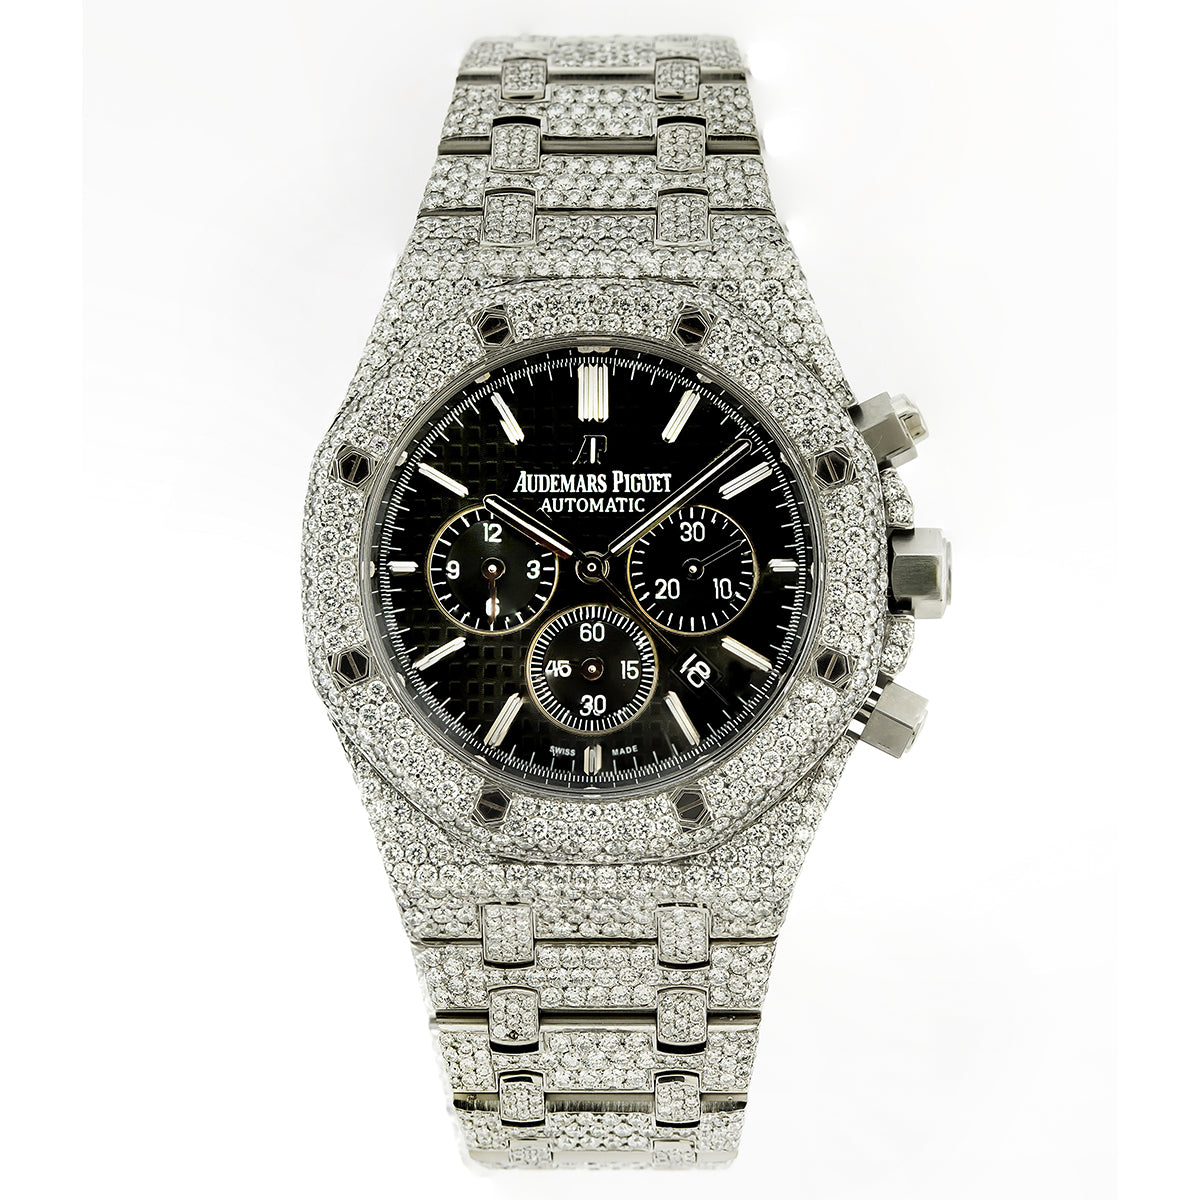 bc0ef7ae68f0d Audemars Piguet Royal Oak Chronograph 26331ST 41mm Black Dial With 23. -  OMI Jewelry